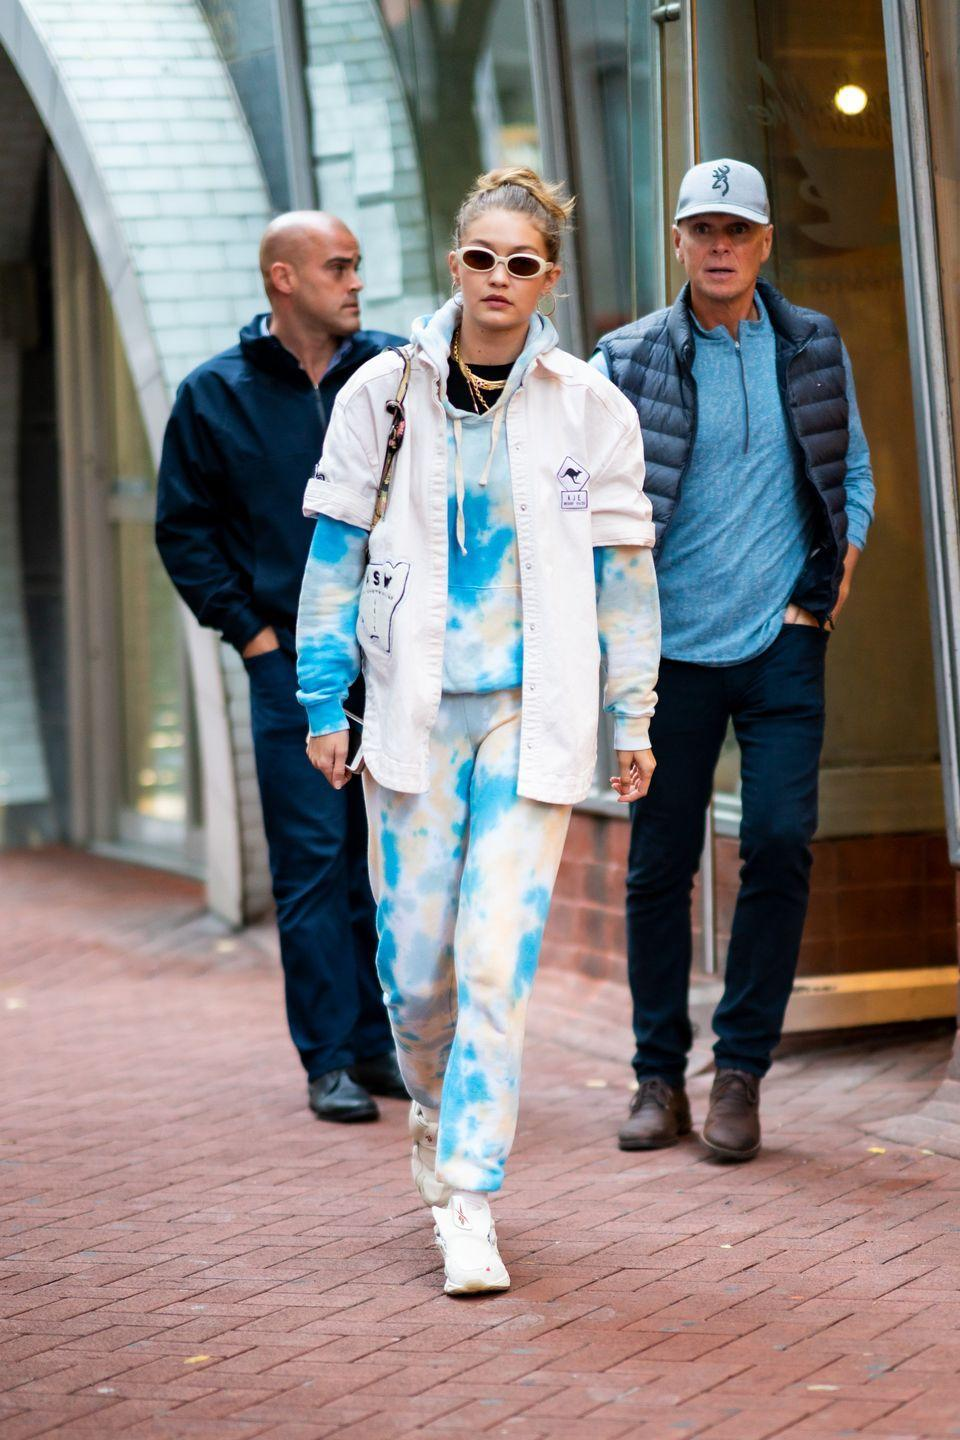 """<p>As further proof that there's nothing she can't pull off, Gigi just stepped out in a full, head-to-toe tie dye outfit. She wore a <a href=""""https://go.redirectingat.com?id=74968X1596630&url=https%3A%2F%2Fwww.bandier.com%2Fraglan-hoodie-3&sref=https%3A%2F%2Fwww.seventeen.com%2Ffashion%2Fceleb-fashion%2Fg3011%2Fgigi-hadid-street-style%2F"""" rel=""""nofollow noopener"""" target=""""_blank"""" data-ylk=""""slk:blue-splotched hoodie"""" class=""""link rapid-noclick-resp"""">blue-splotched hoodie</a> with <a href=""""https://go.redirectingat.com?id=74968X1596630&url=https%3A%2F%2Fwww.bandier.com%2Fclassic-sweatpant-6&sref=https%3A%2F%2Fwww.seventeen.com%2Ffashion%2Fceleb-fashion%2Fg3011%2Fgigi-hadid-street-style%2F"""" rel=""""nofollow noopener"""" target=""""_blank"""" data-ylk=""""slk:matching joggers"""" class=""""link rapid-noclick-resp"""">matching joggers</a>, then added a button-up shirt and <a href=""""https://go.redirectingat.com?id=74968X1596630&url=https%3A%2F%2Fwww.reebok.com%2Fus&sref=https%3A%2F%2Fwww.seventeen.com%2Ffashion%2Fceleb-fashion%2Fg3011%2Fgigi-hadid-street-style%2F"""" rel=""""nofollow noopener"""" target=""""_blank"""" data-ylk=""""slk:Reeboks"""" class=""""link rapid-noclick-resp"""">Reeboks</a>.</p>"""